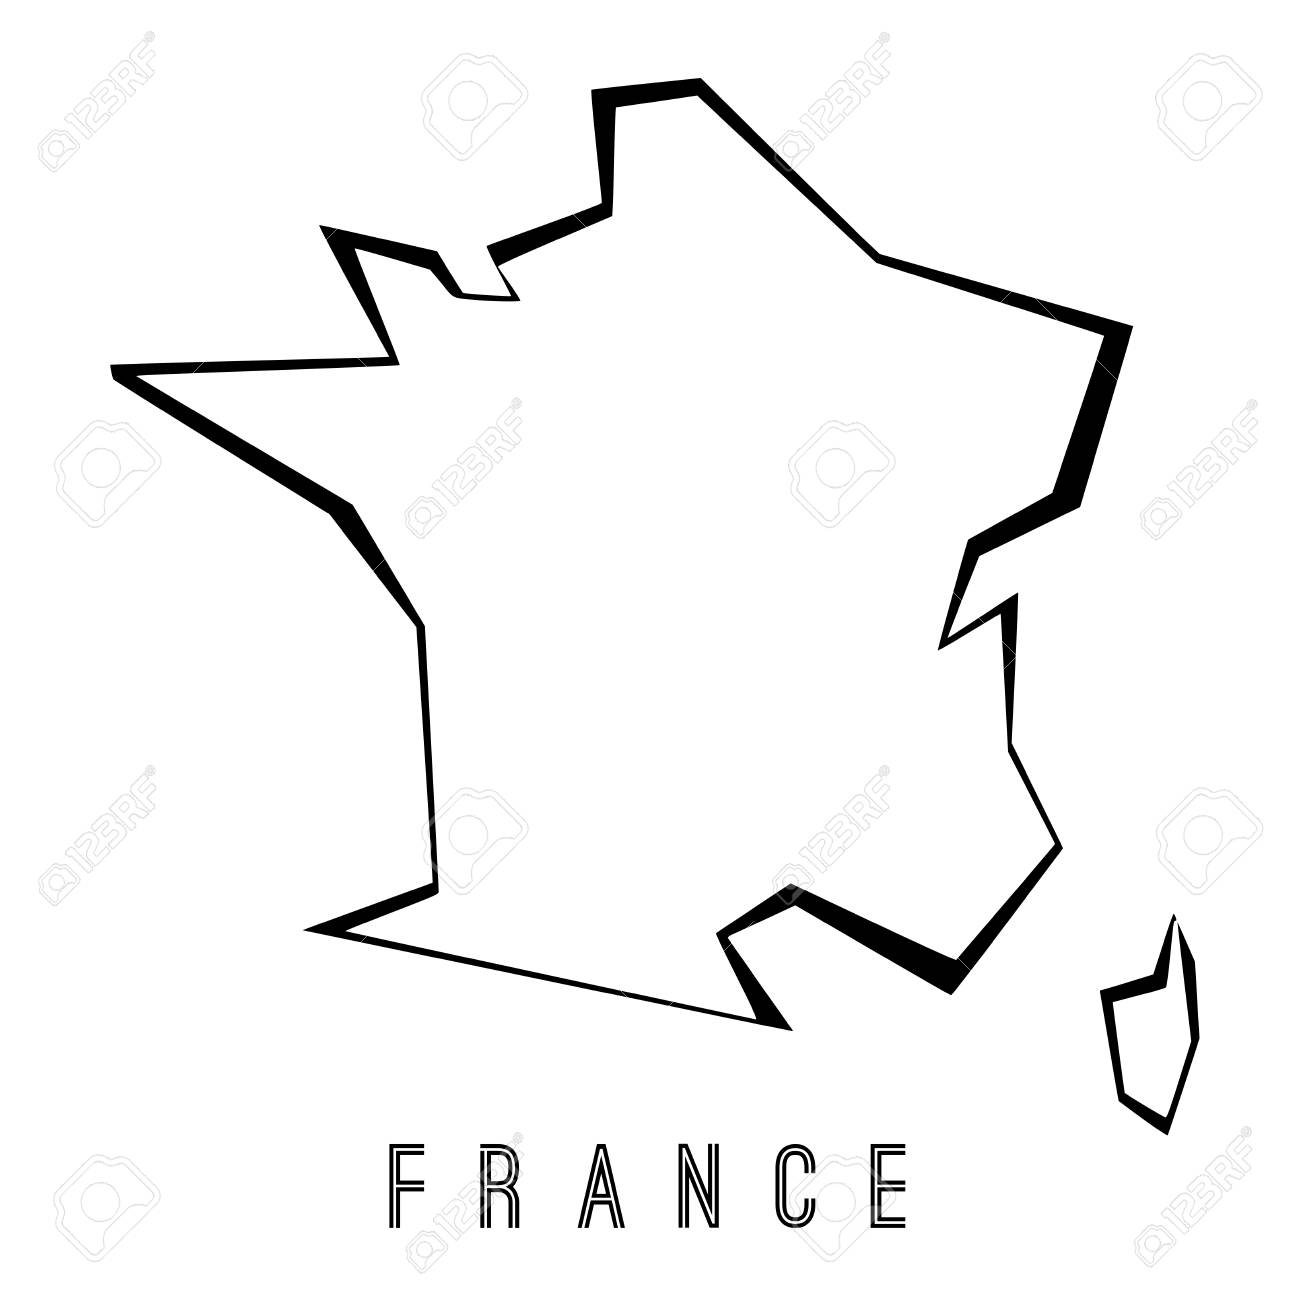 France Map Outline Country Shape Sharp Polygonal Geometric